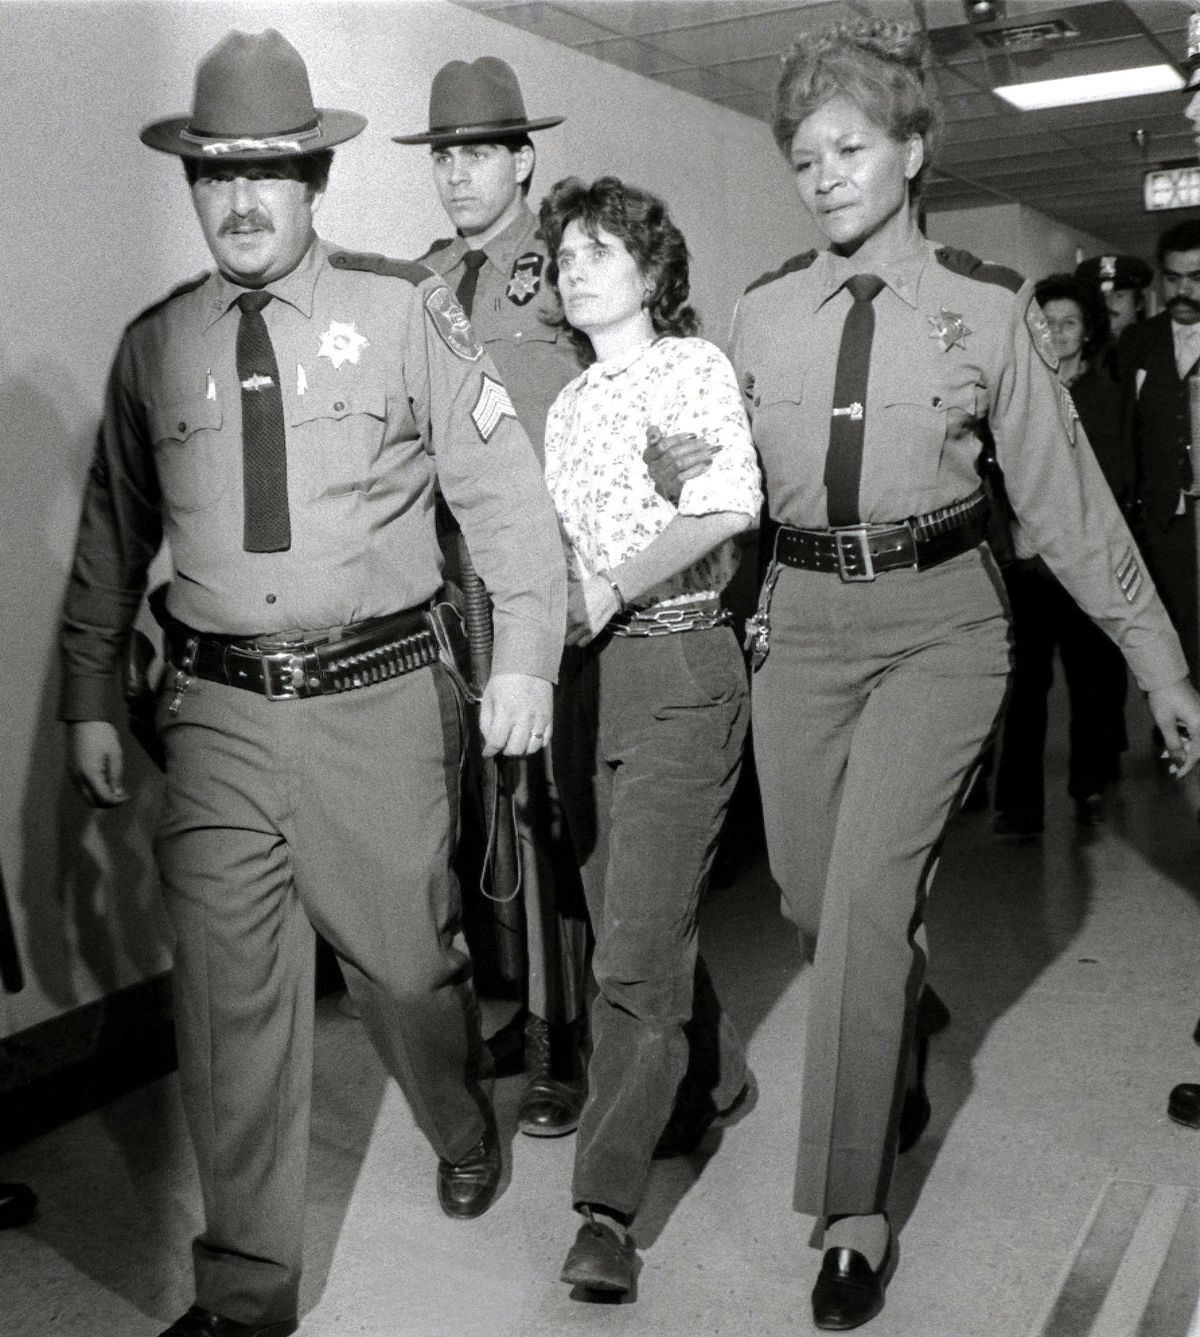 Weather Underground member Katherine Boudin is taken from the Rockland County Courthouse in New City, New York, on Nov. 21, 1981, after her arrest for murder.